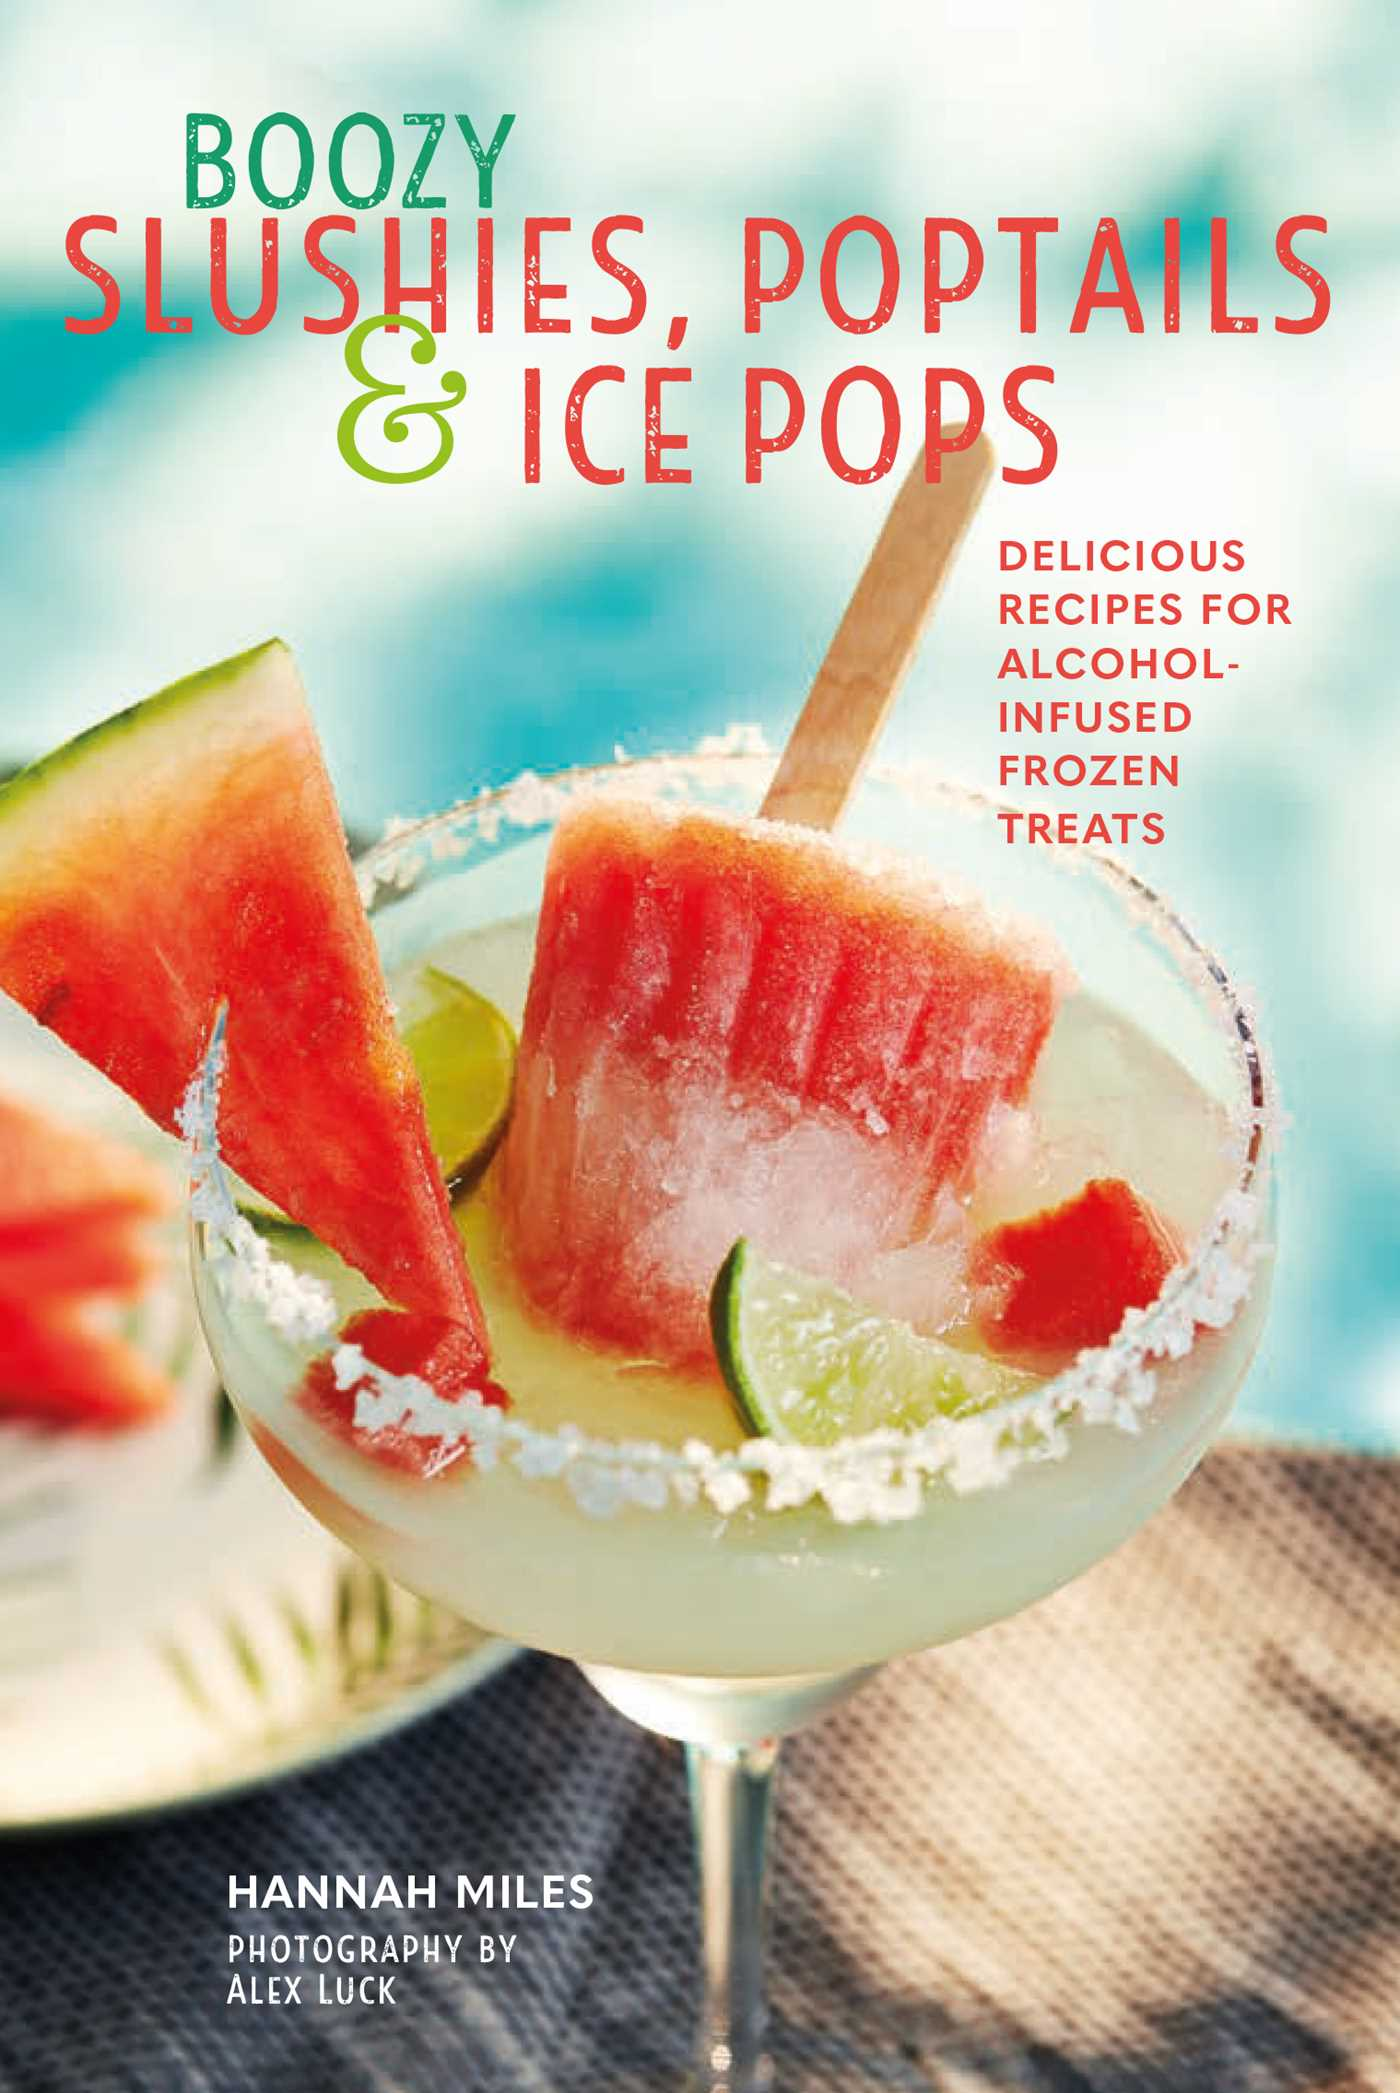 Boozy slushies poptails and ice pops 9781849759663 hr